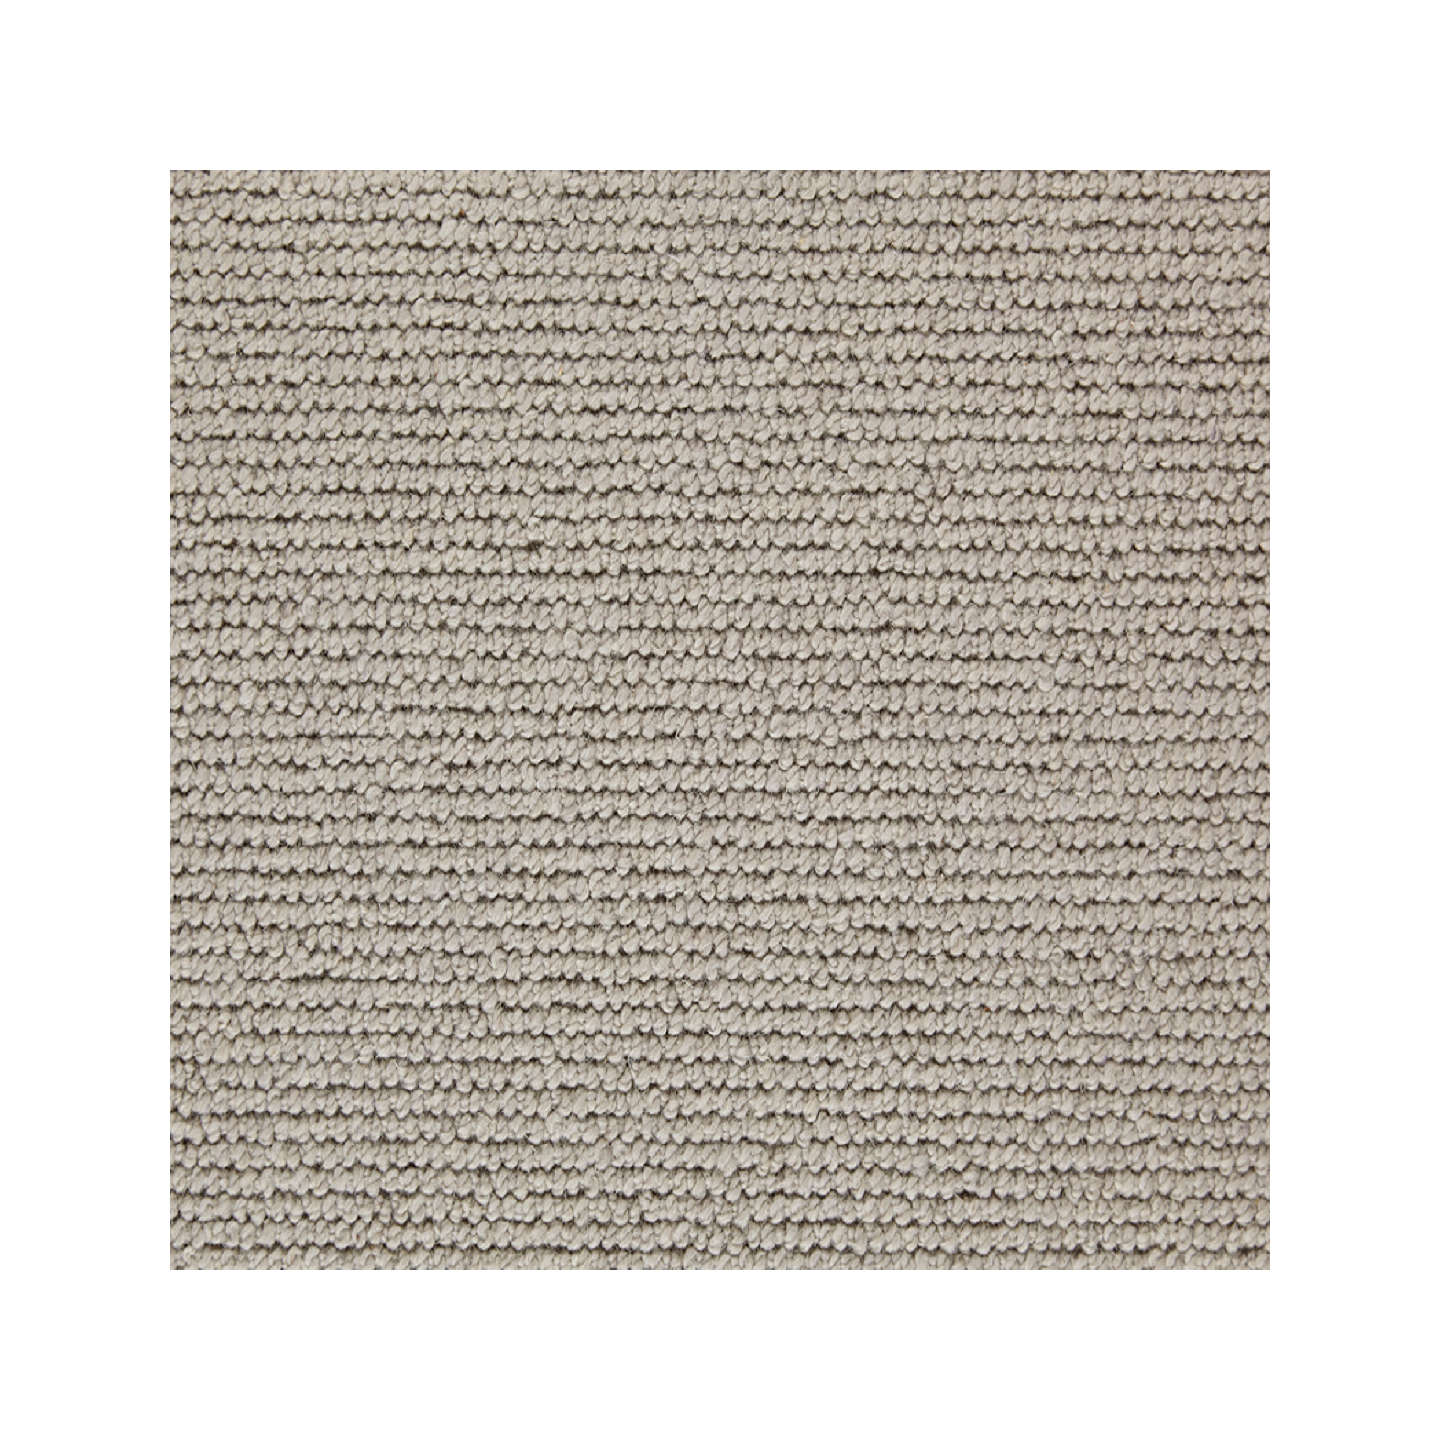 BuyJohn Lewis Dorset Loop Carpet, Furrow Online at johnlewis.com